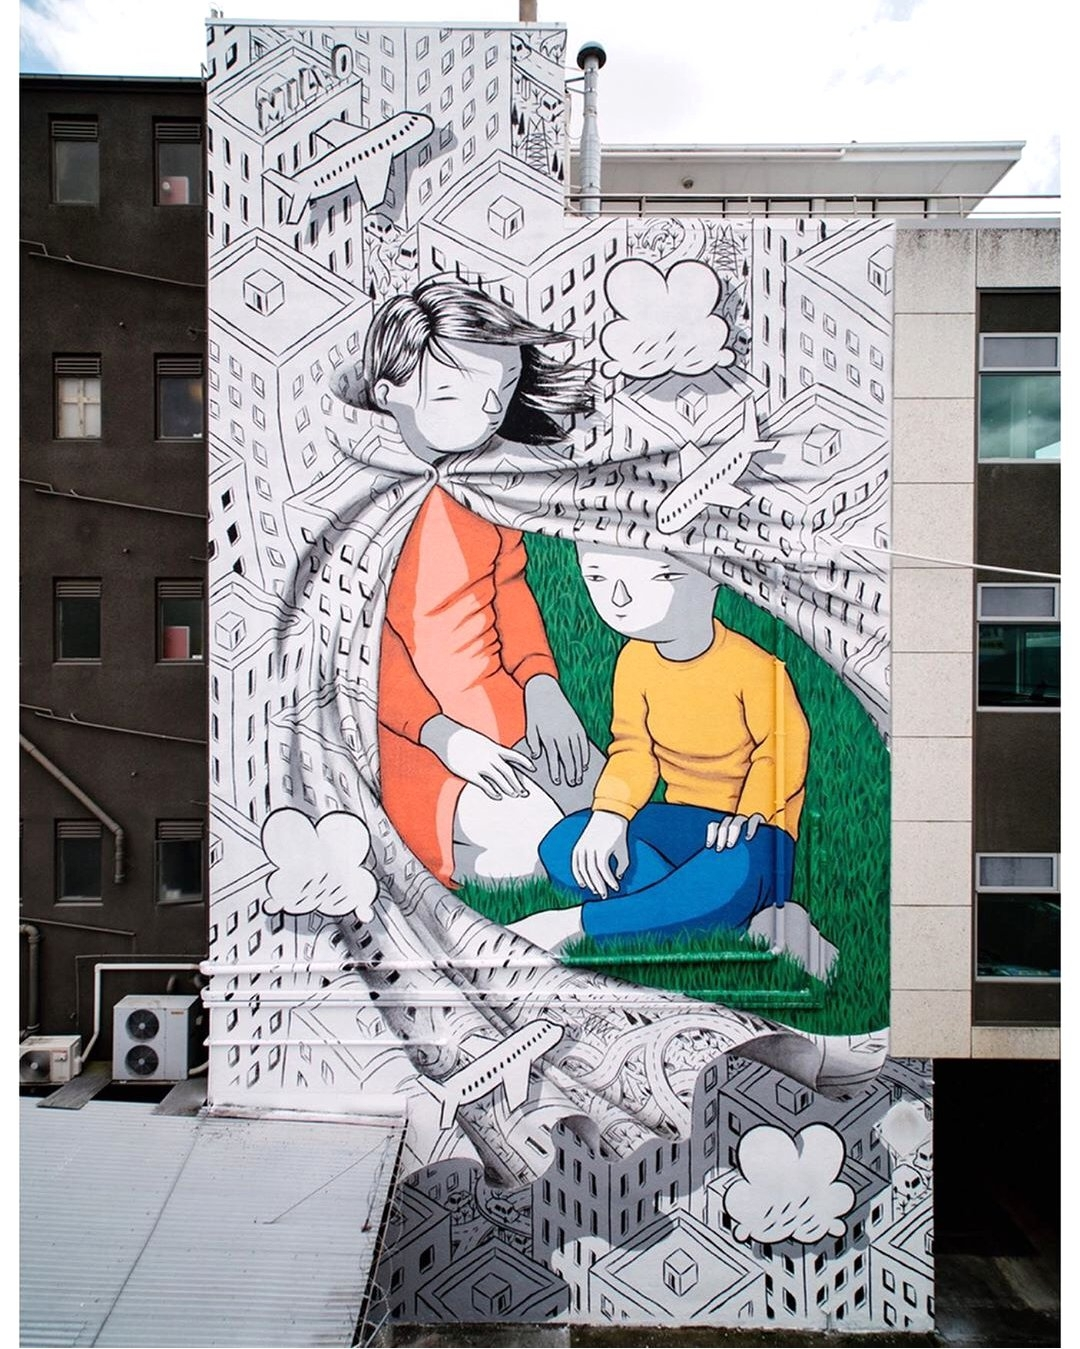 Millo @ Palmerston North, New Zealand